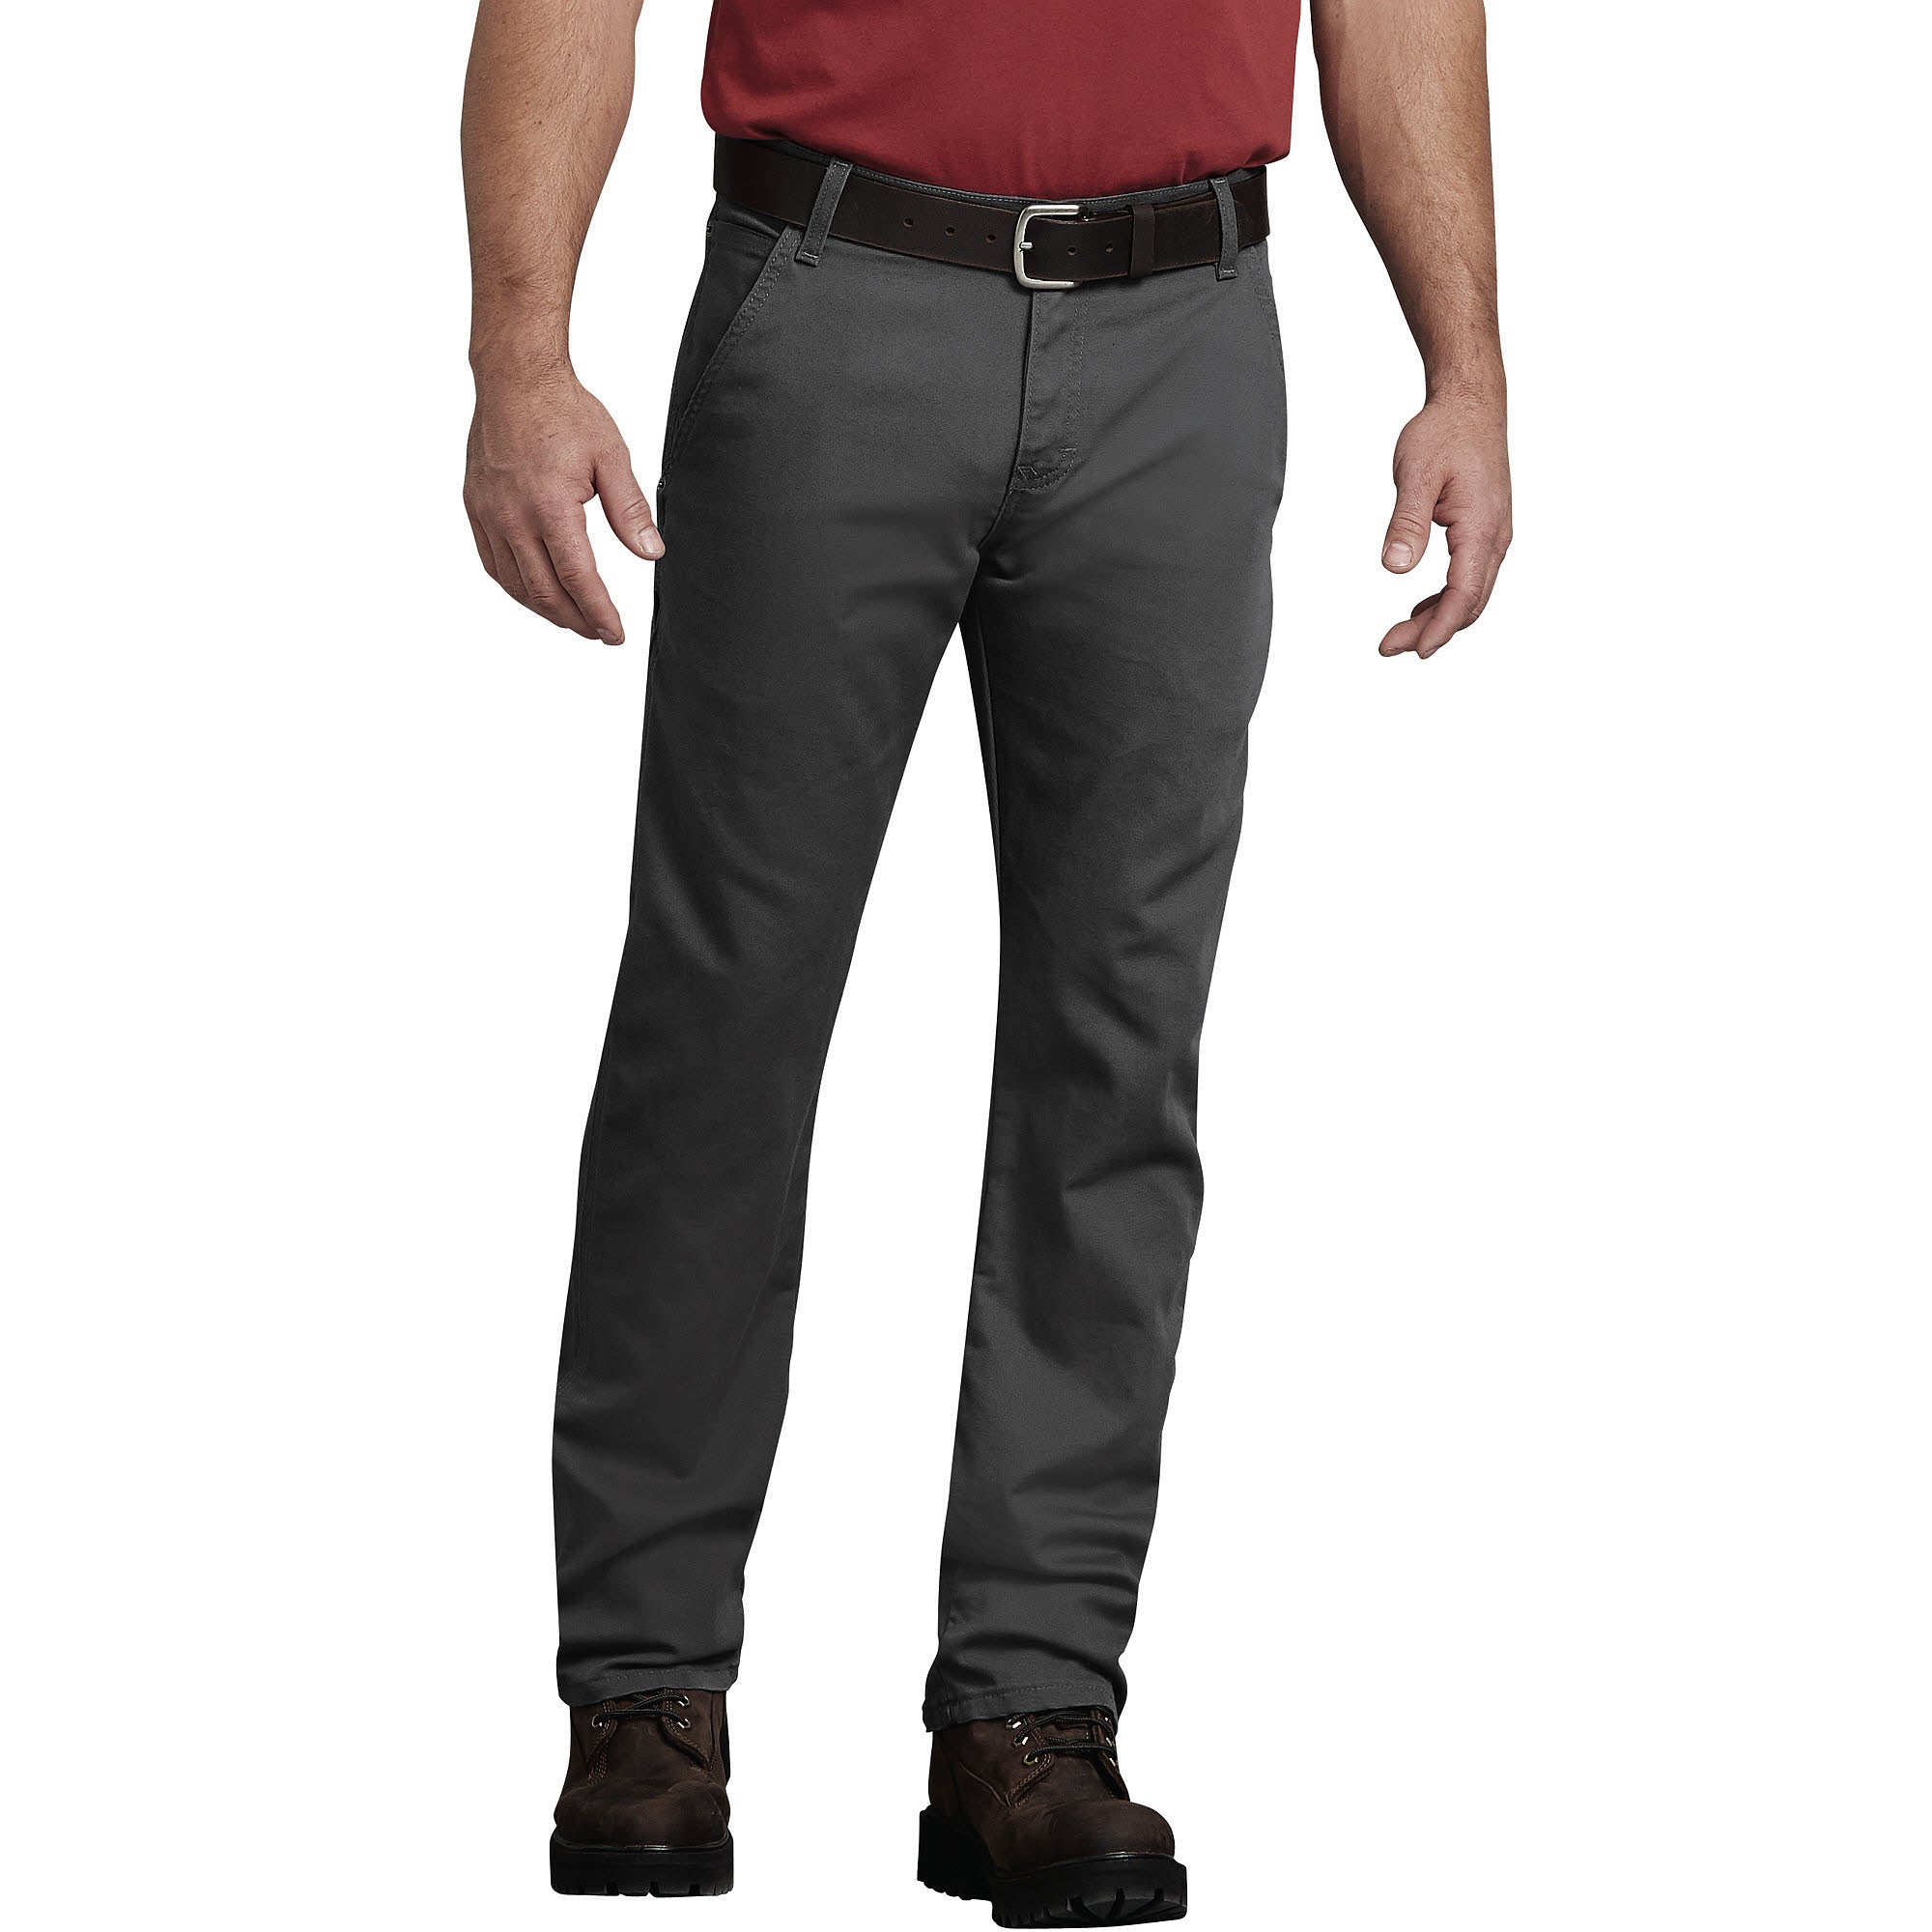 'Dickies' Flex Regular Fit Straight Leg Tough Max Duck Carpenter Pants - Stonewashed Gray